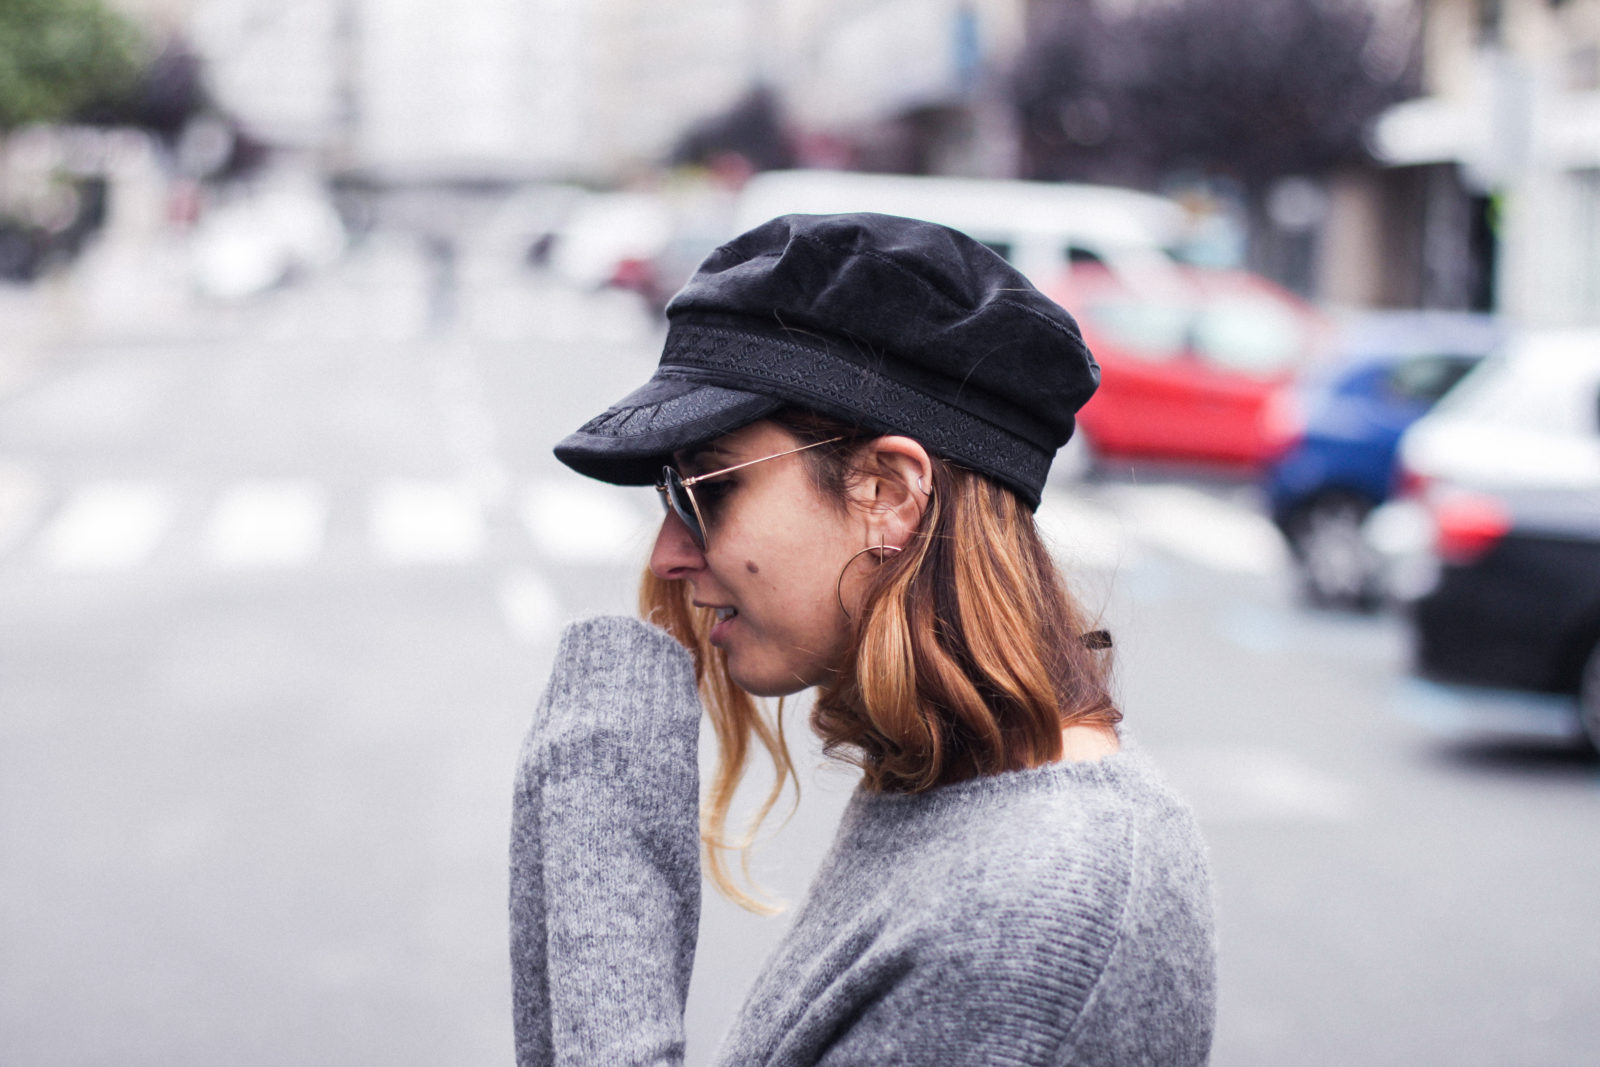 baker_boy_hat_flared_pants_vans_oversize_knit_fall_2016_trends_street_style_outfits_donkeycool-9